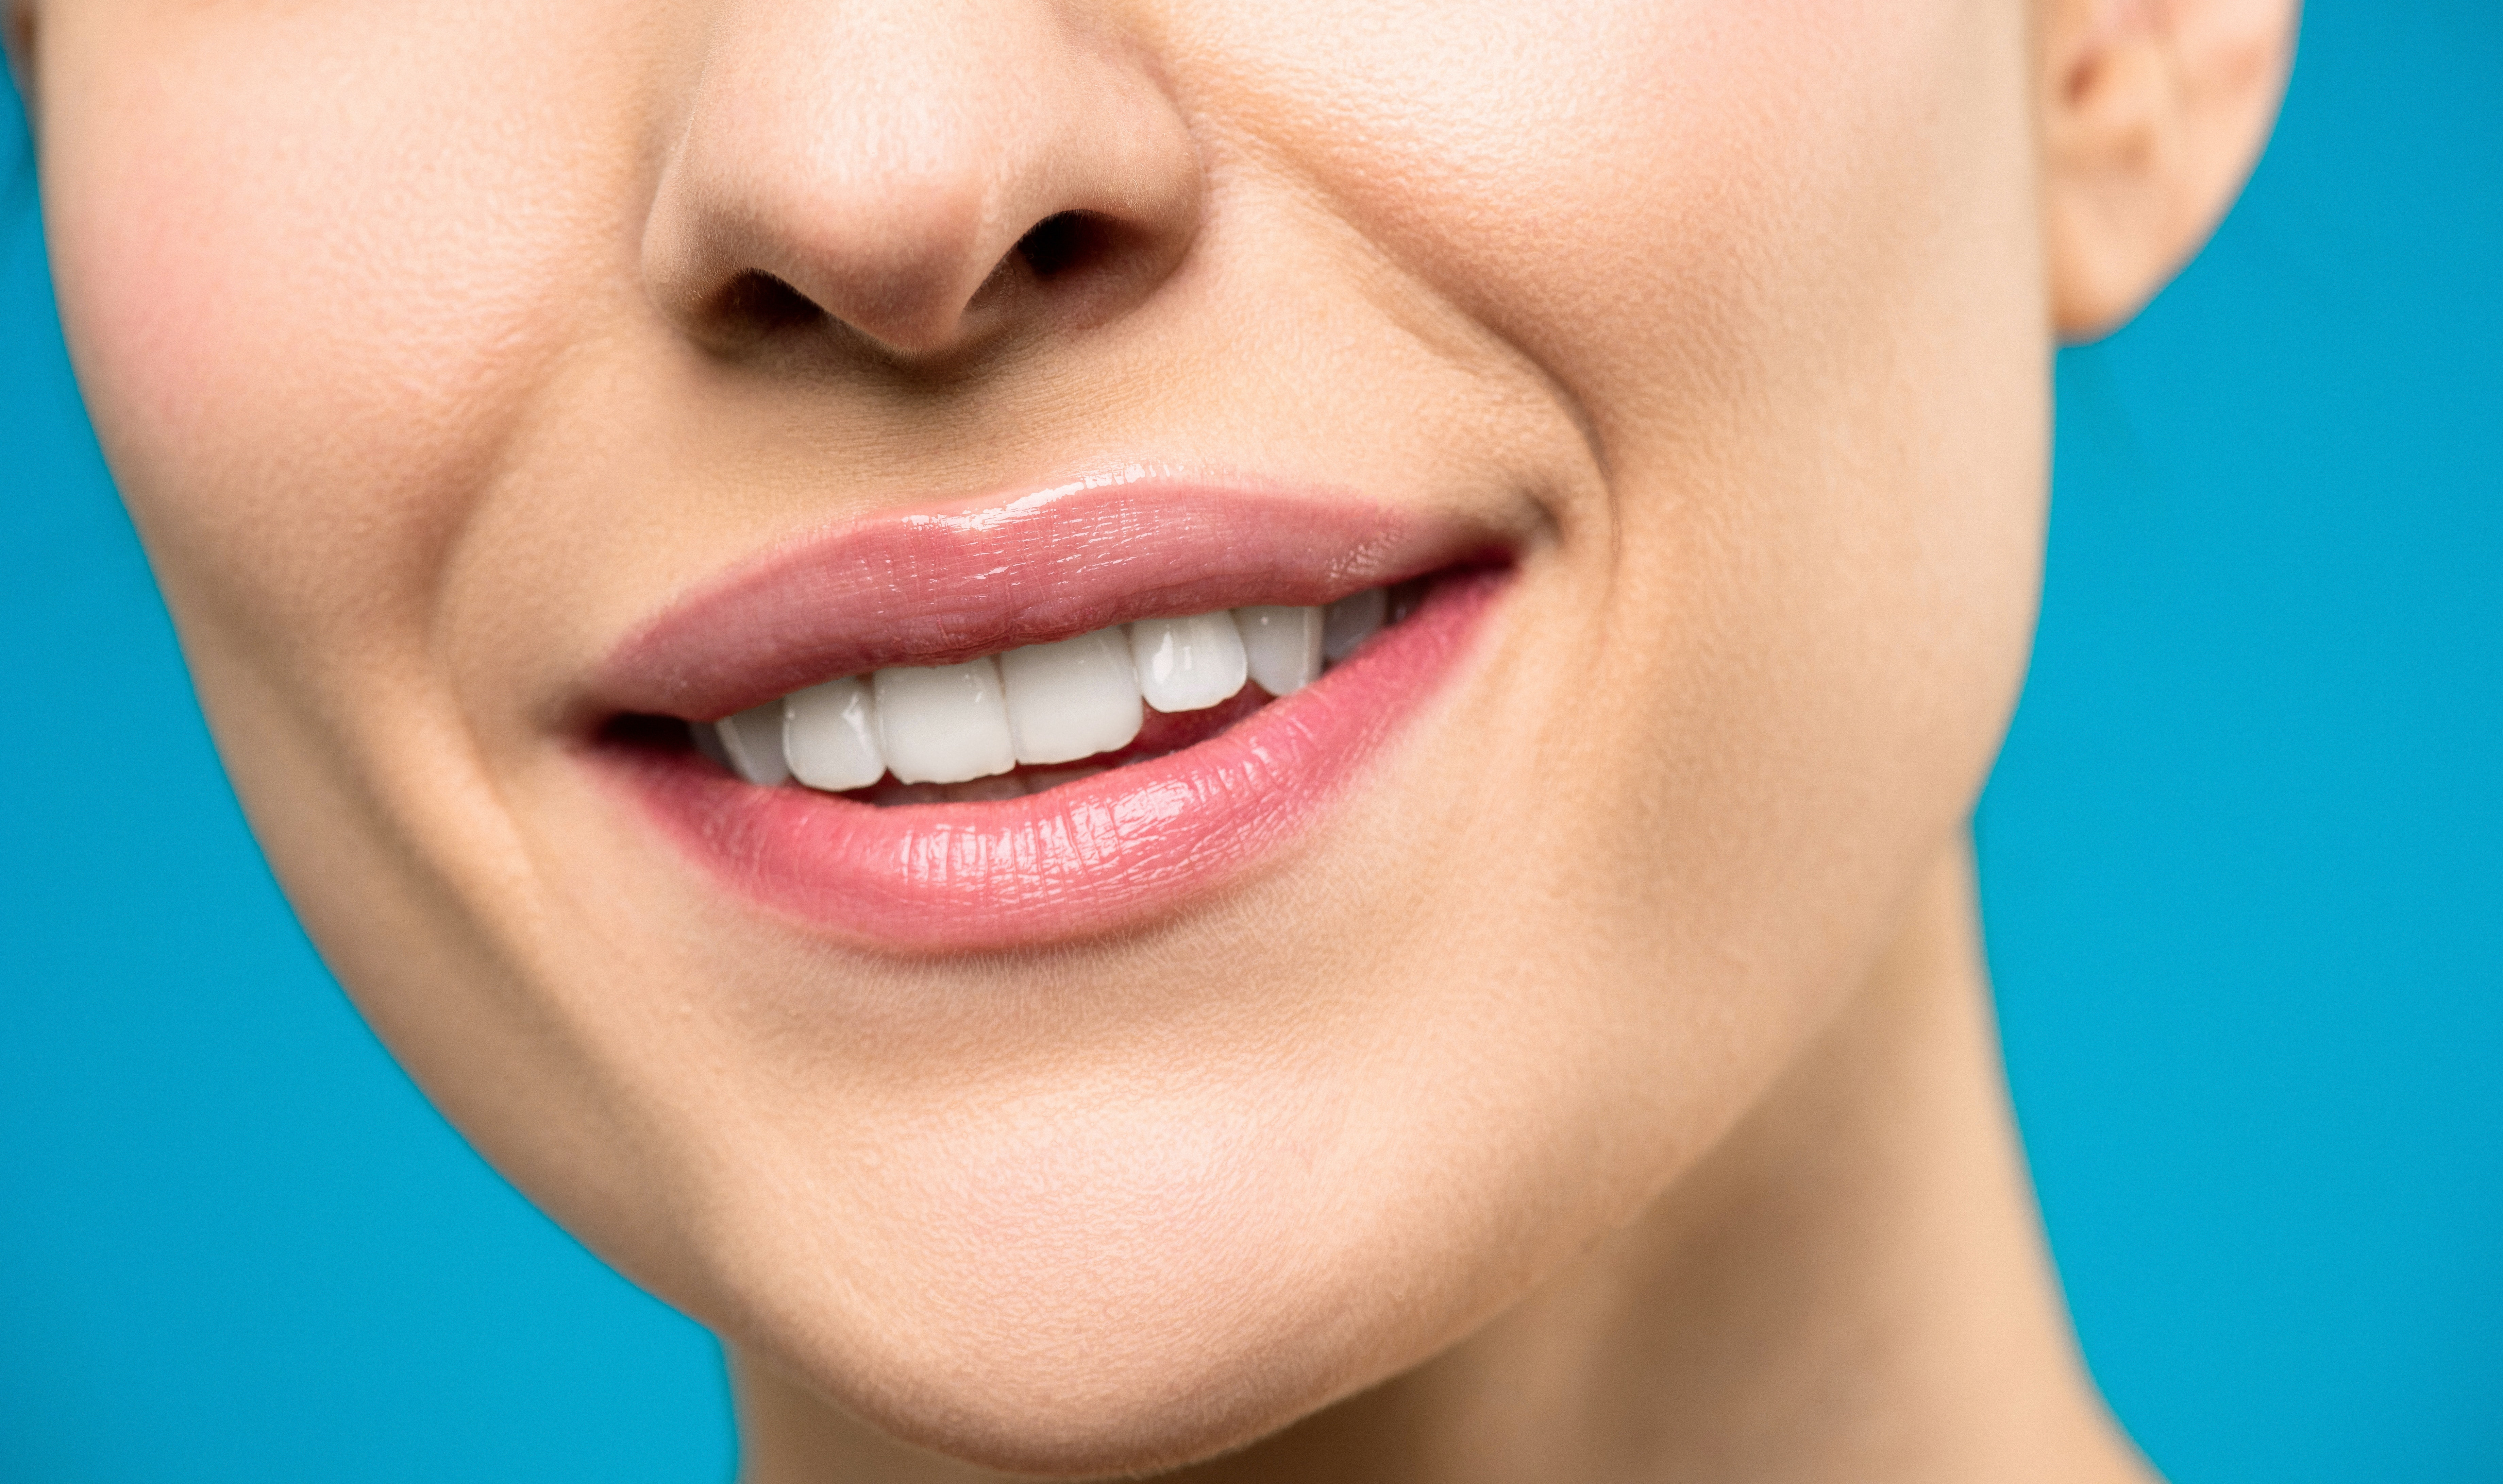 How to Keep Teeth Bright After Whitening